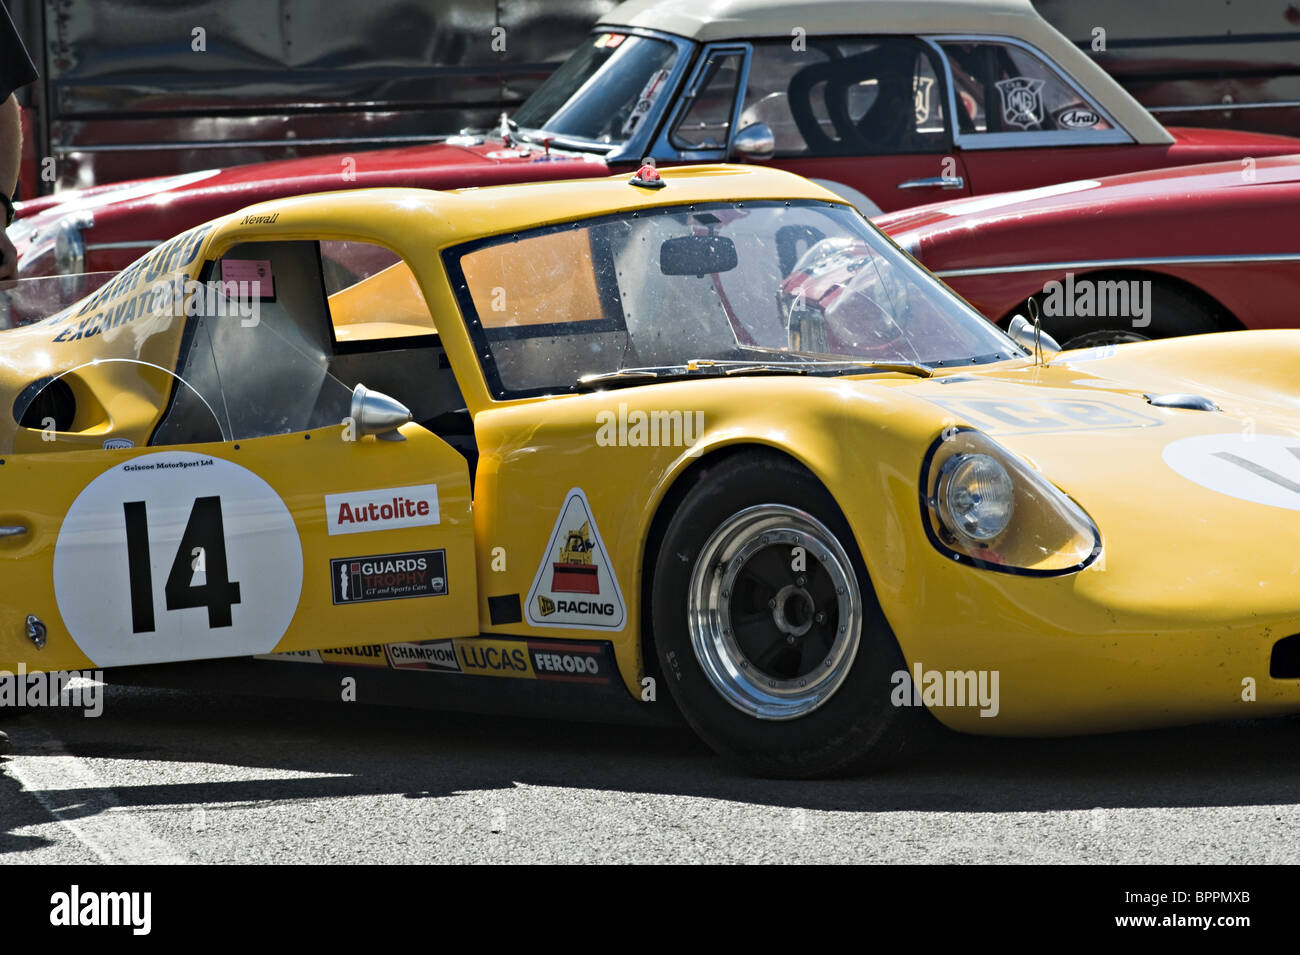 Yellow Chevron B8 Sports Race Car in Paddock at Oulton Park Motor Racing Circuit Cheshire England United Kingdom - Stock Image